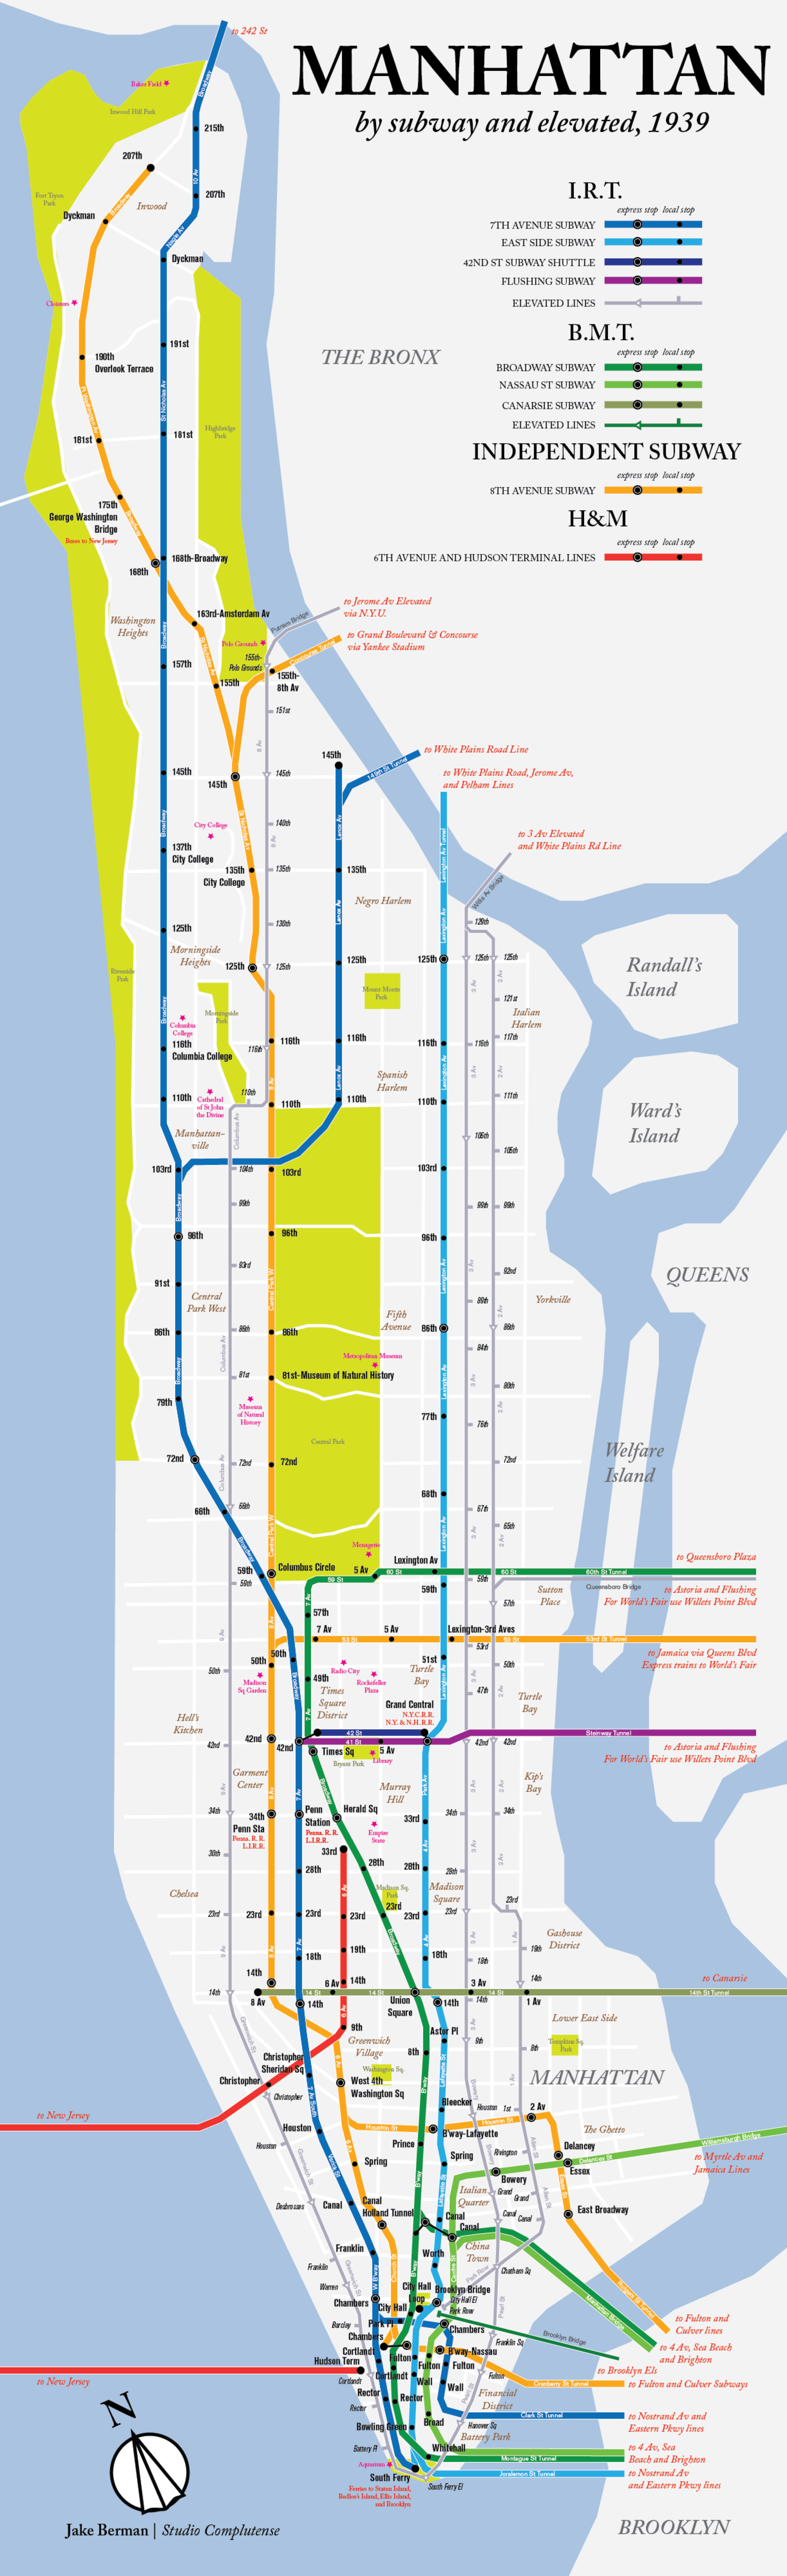 Nyc Subway Map 2000.Check Out This Modern Map Of Manhattan S 1939 Subway And Elevated